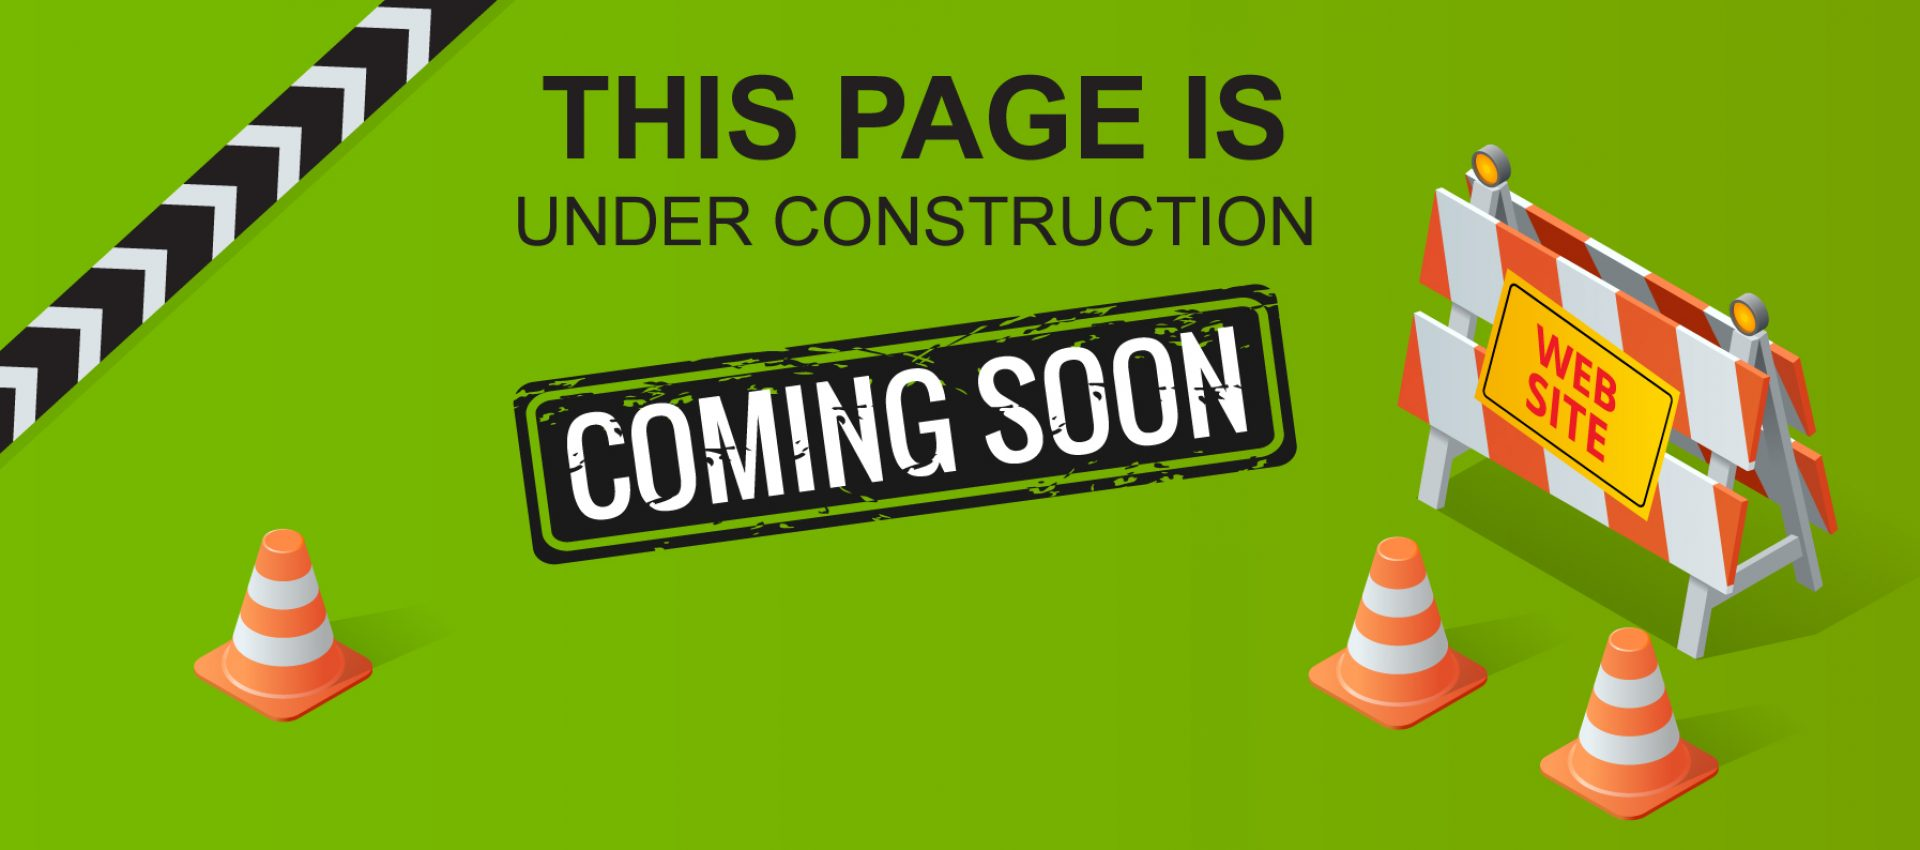 web-under-construction_new